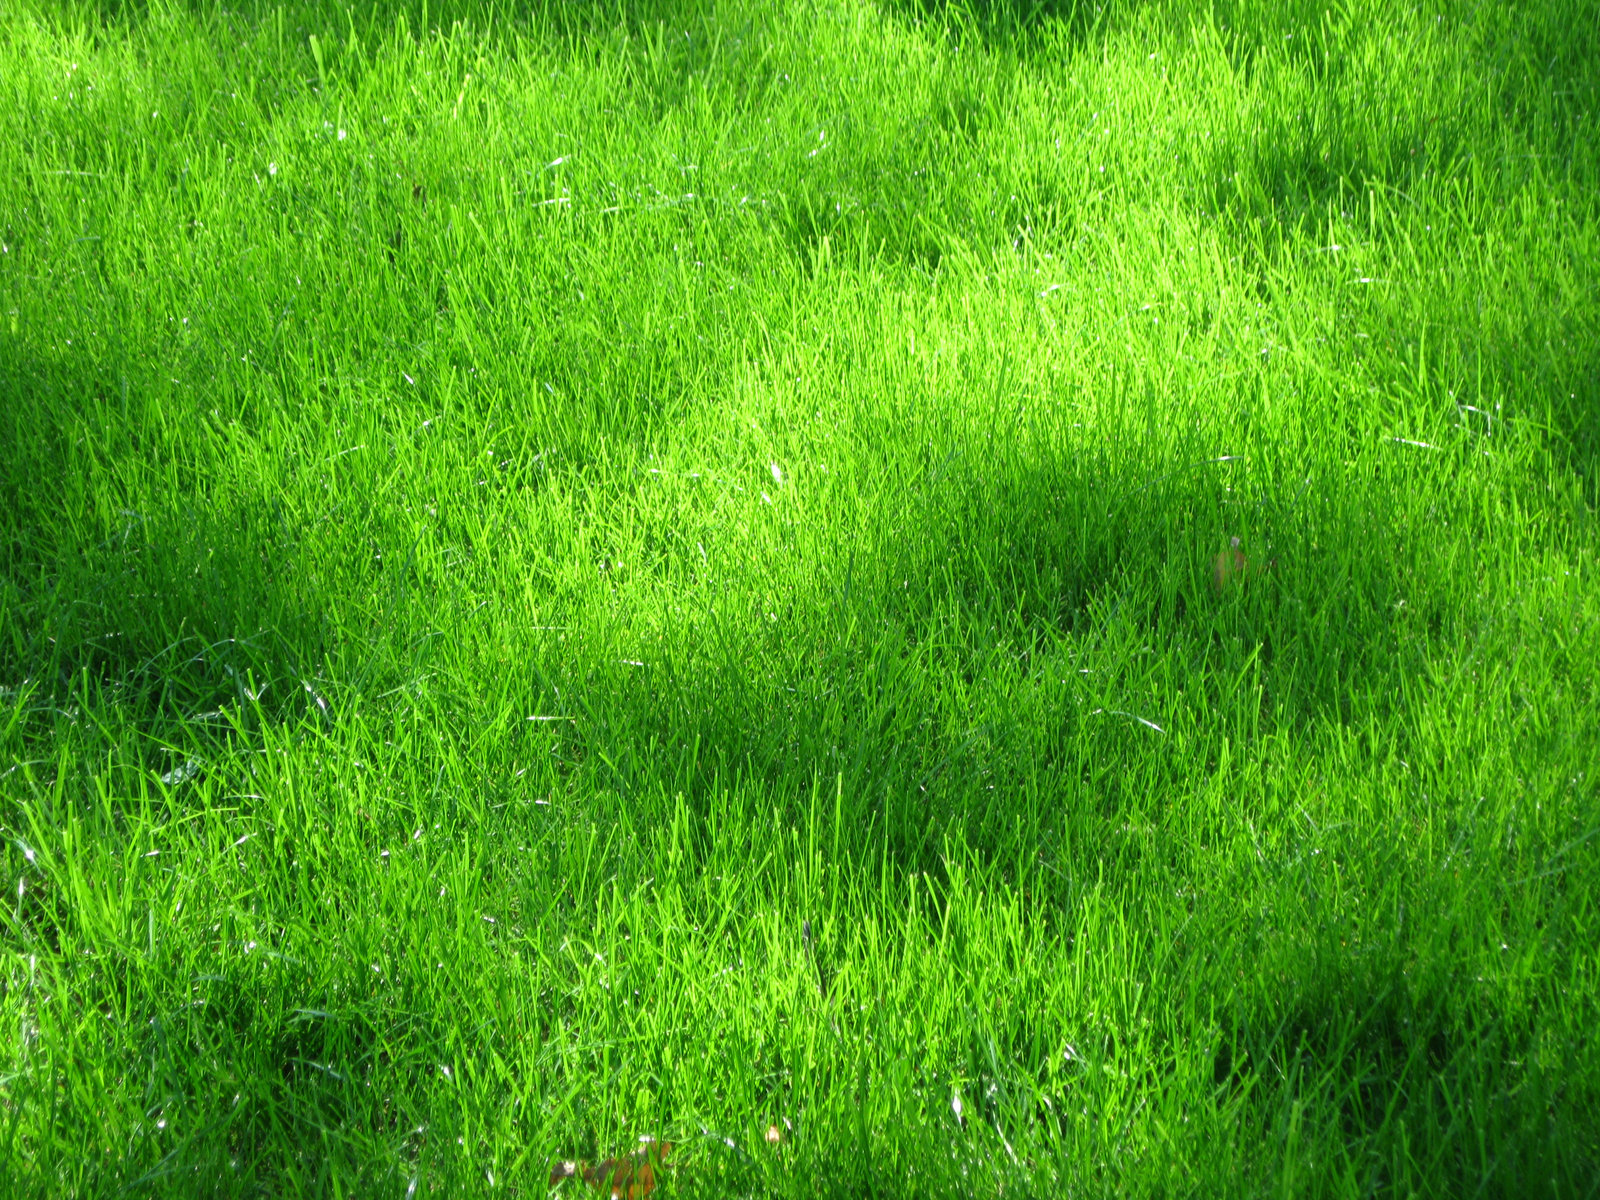 green grass texture, texture download photo, background, green grass